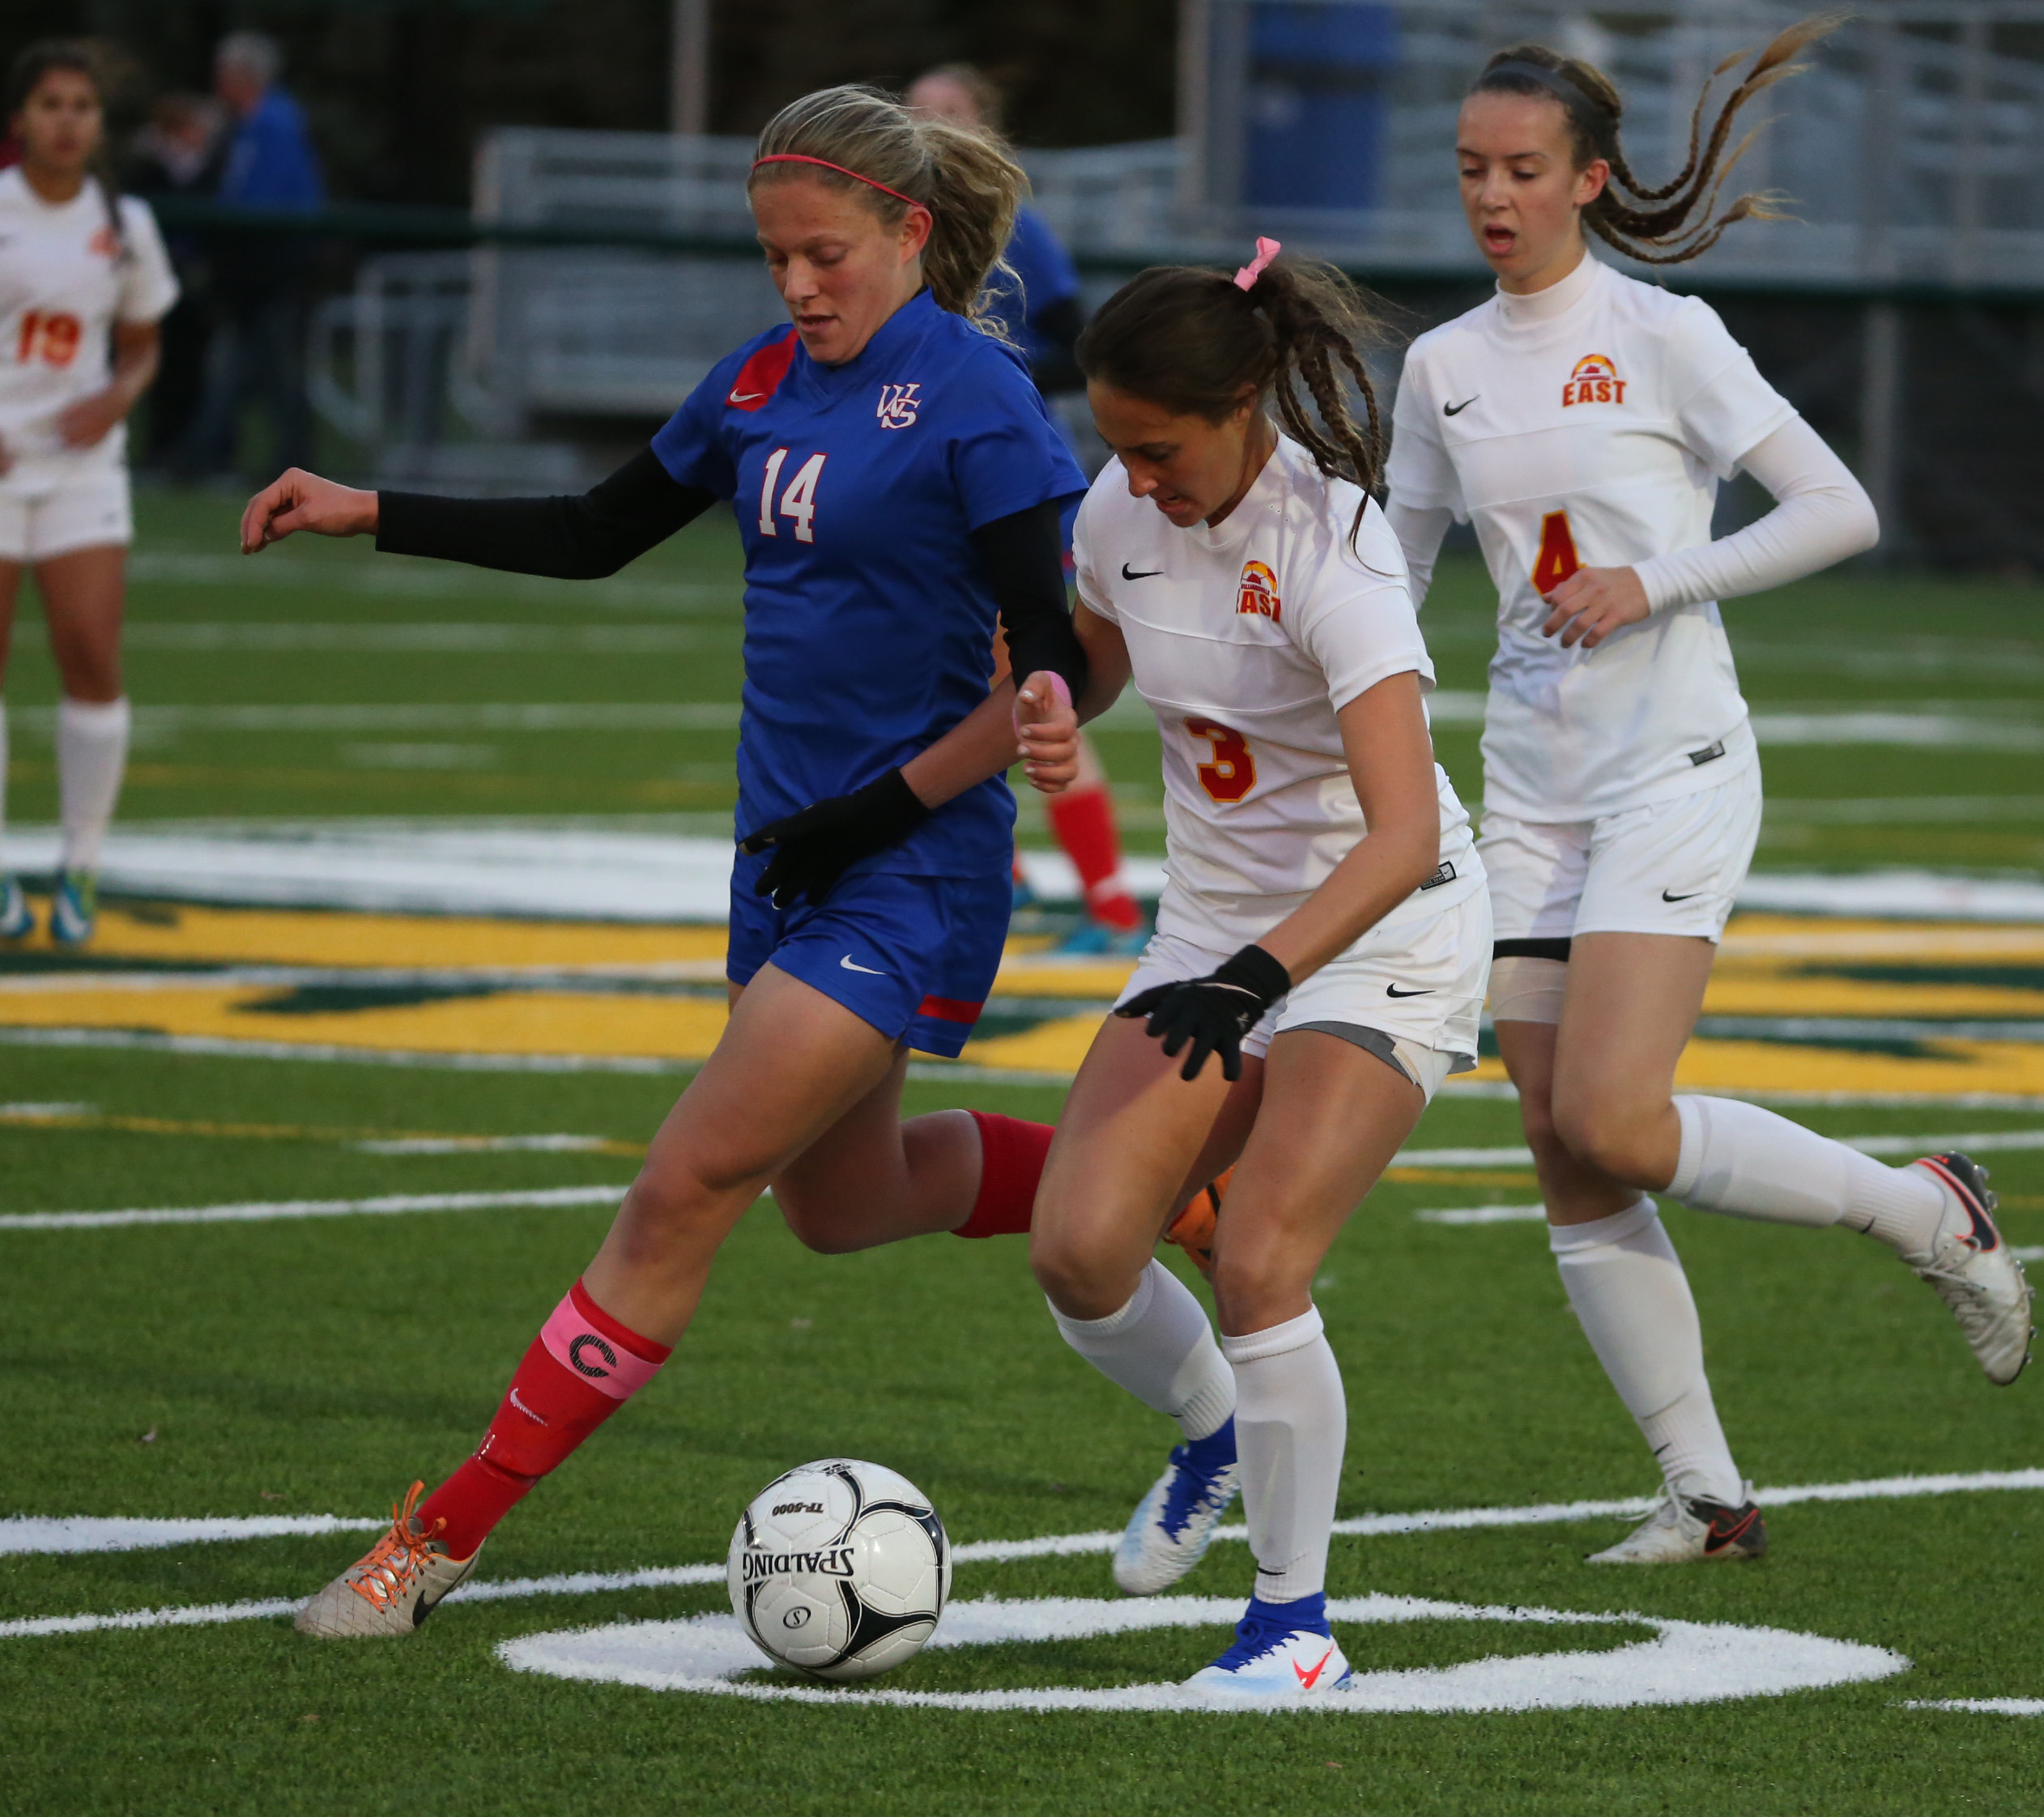 Williamsville East's Marissa Cirulli battles Williamsville South's Nicole Gruber for the ball in the first half of their sectional game Tuesday (James P. McCoy/Buffalo News).